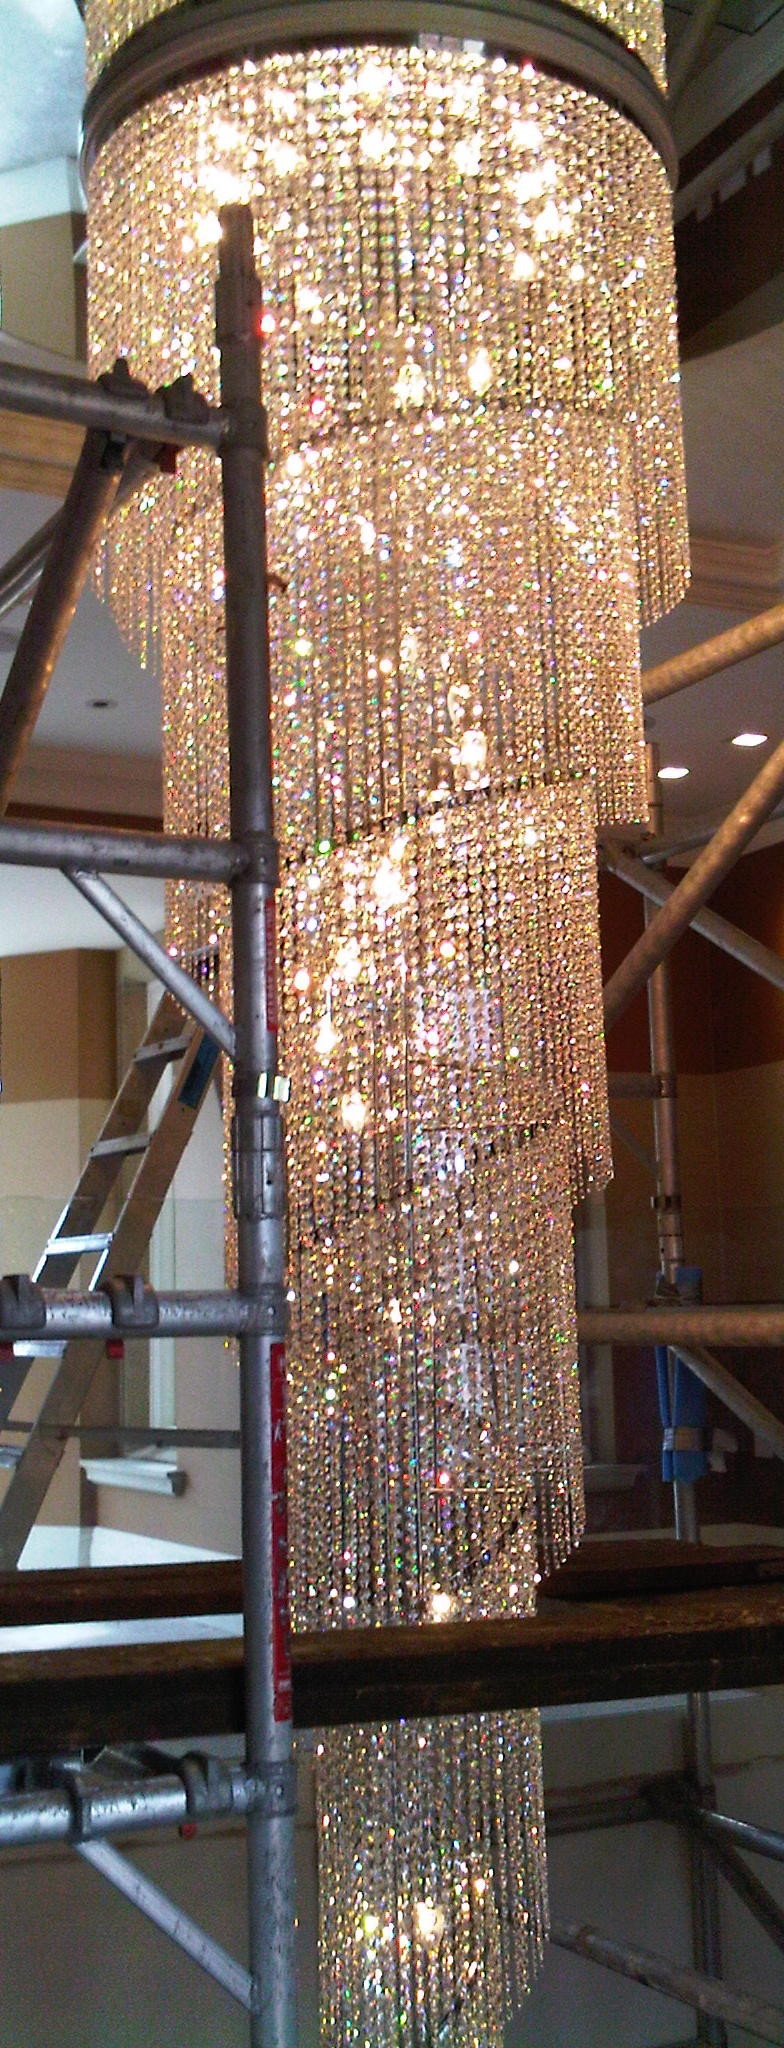 BESPOKE CRYSTAL SPIRAL LIGHT SCULPTURE